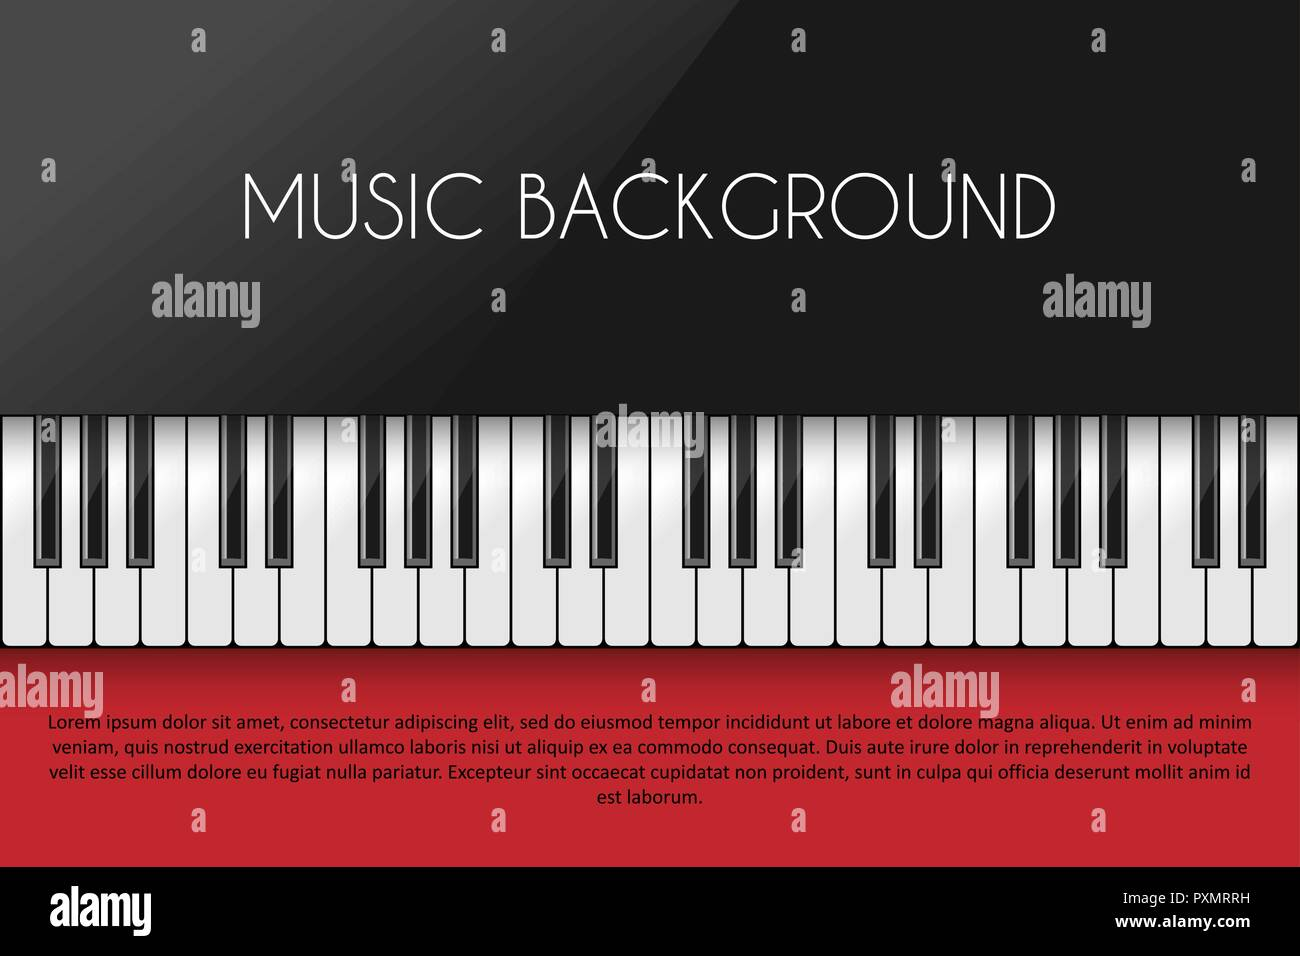 Music Background With Piano Keyboard Poster Design Template